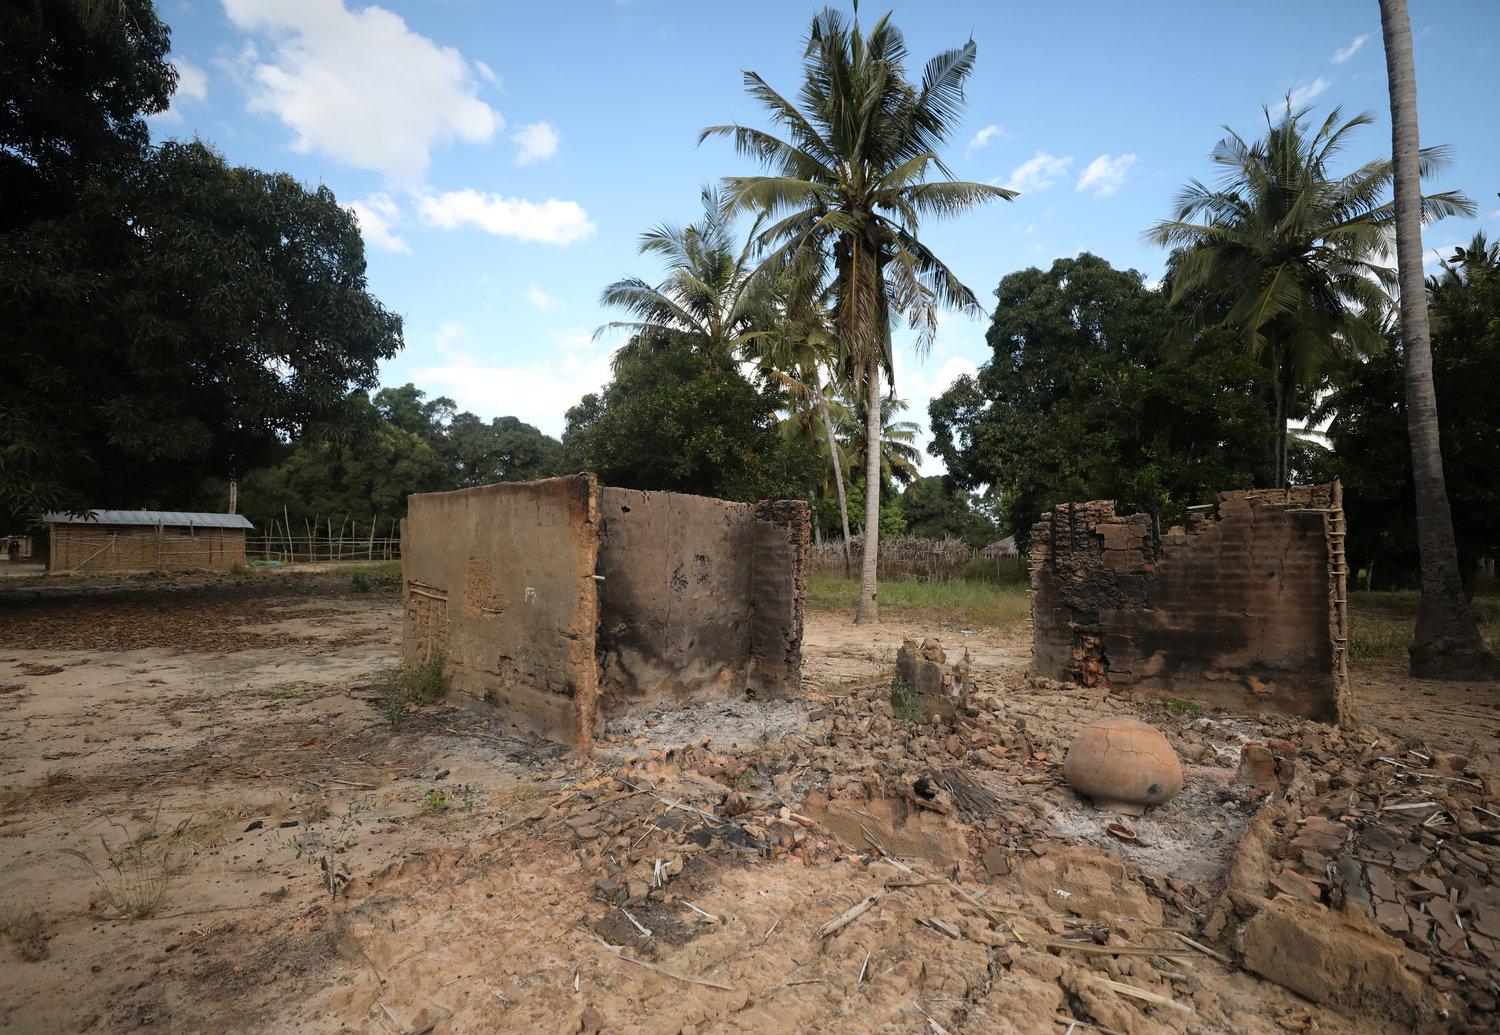 Destroyed homes are seen at the scene of an armed attack in Chitolo, Mozambique, July 10, 2018. Pope Francis is expected to talk about rejecting violence during the first stop of a three-nation trip in September.